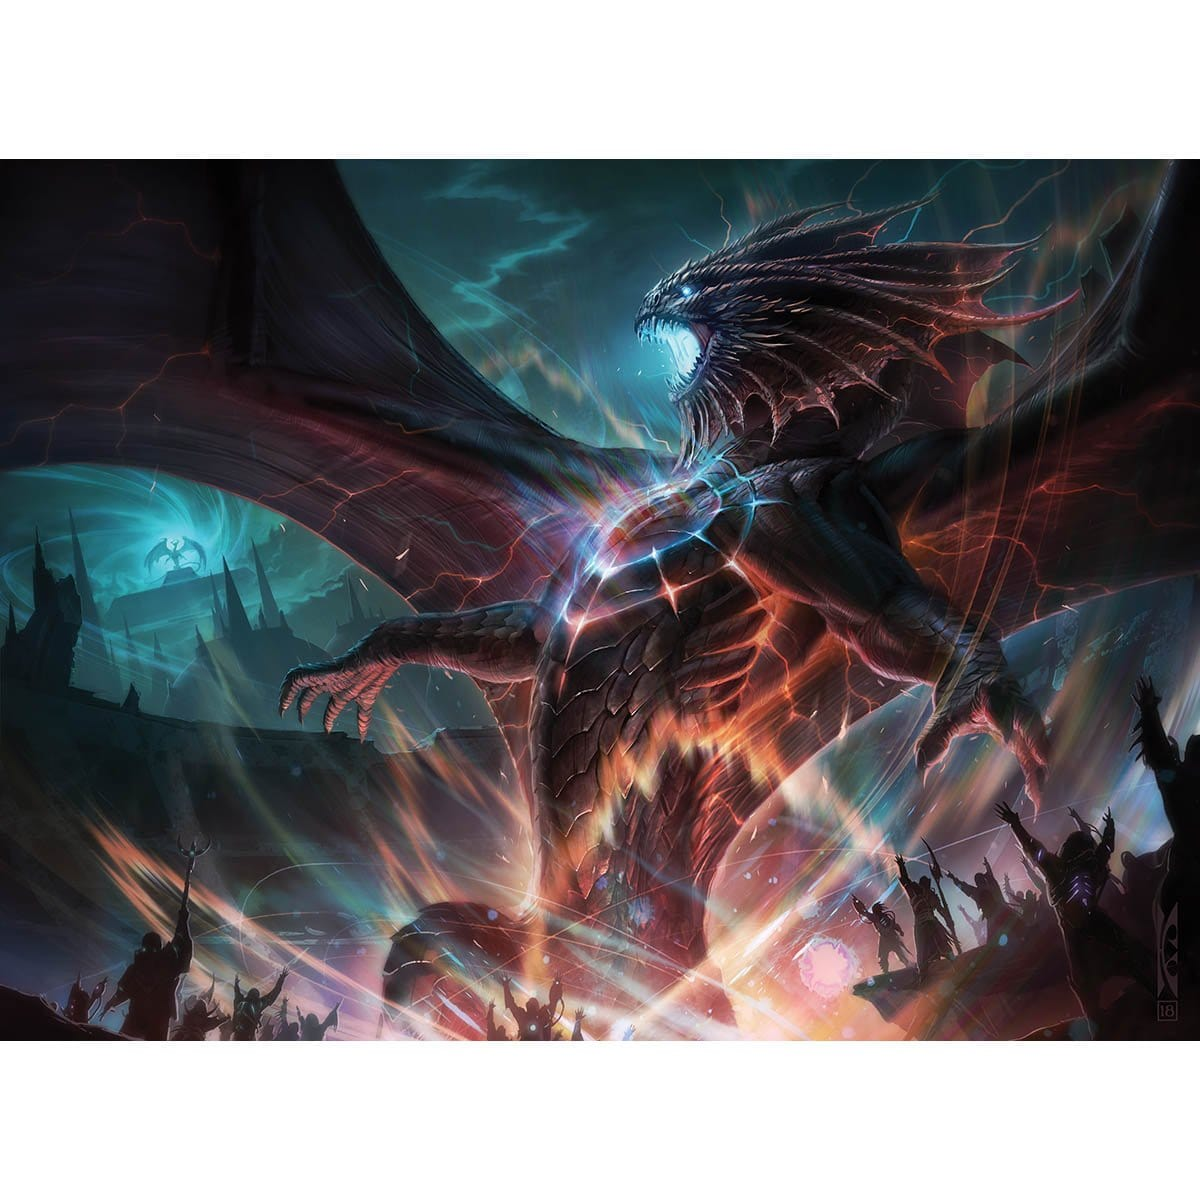 Niv-Mizzet, Reborn Print - Print - Original Magic Art - Accessories for Magic the Gathering and other card games